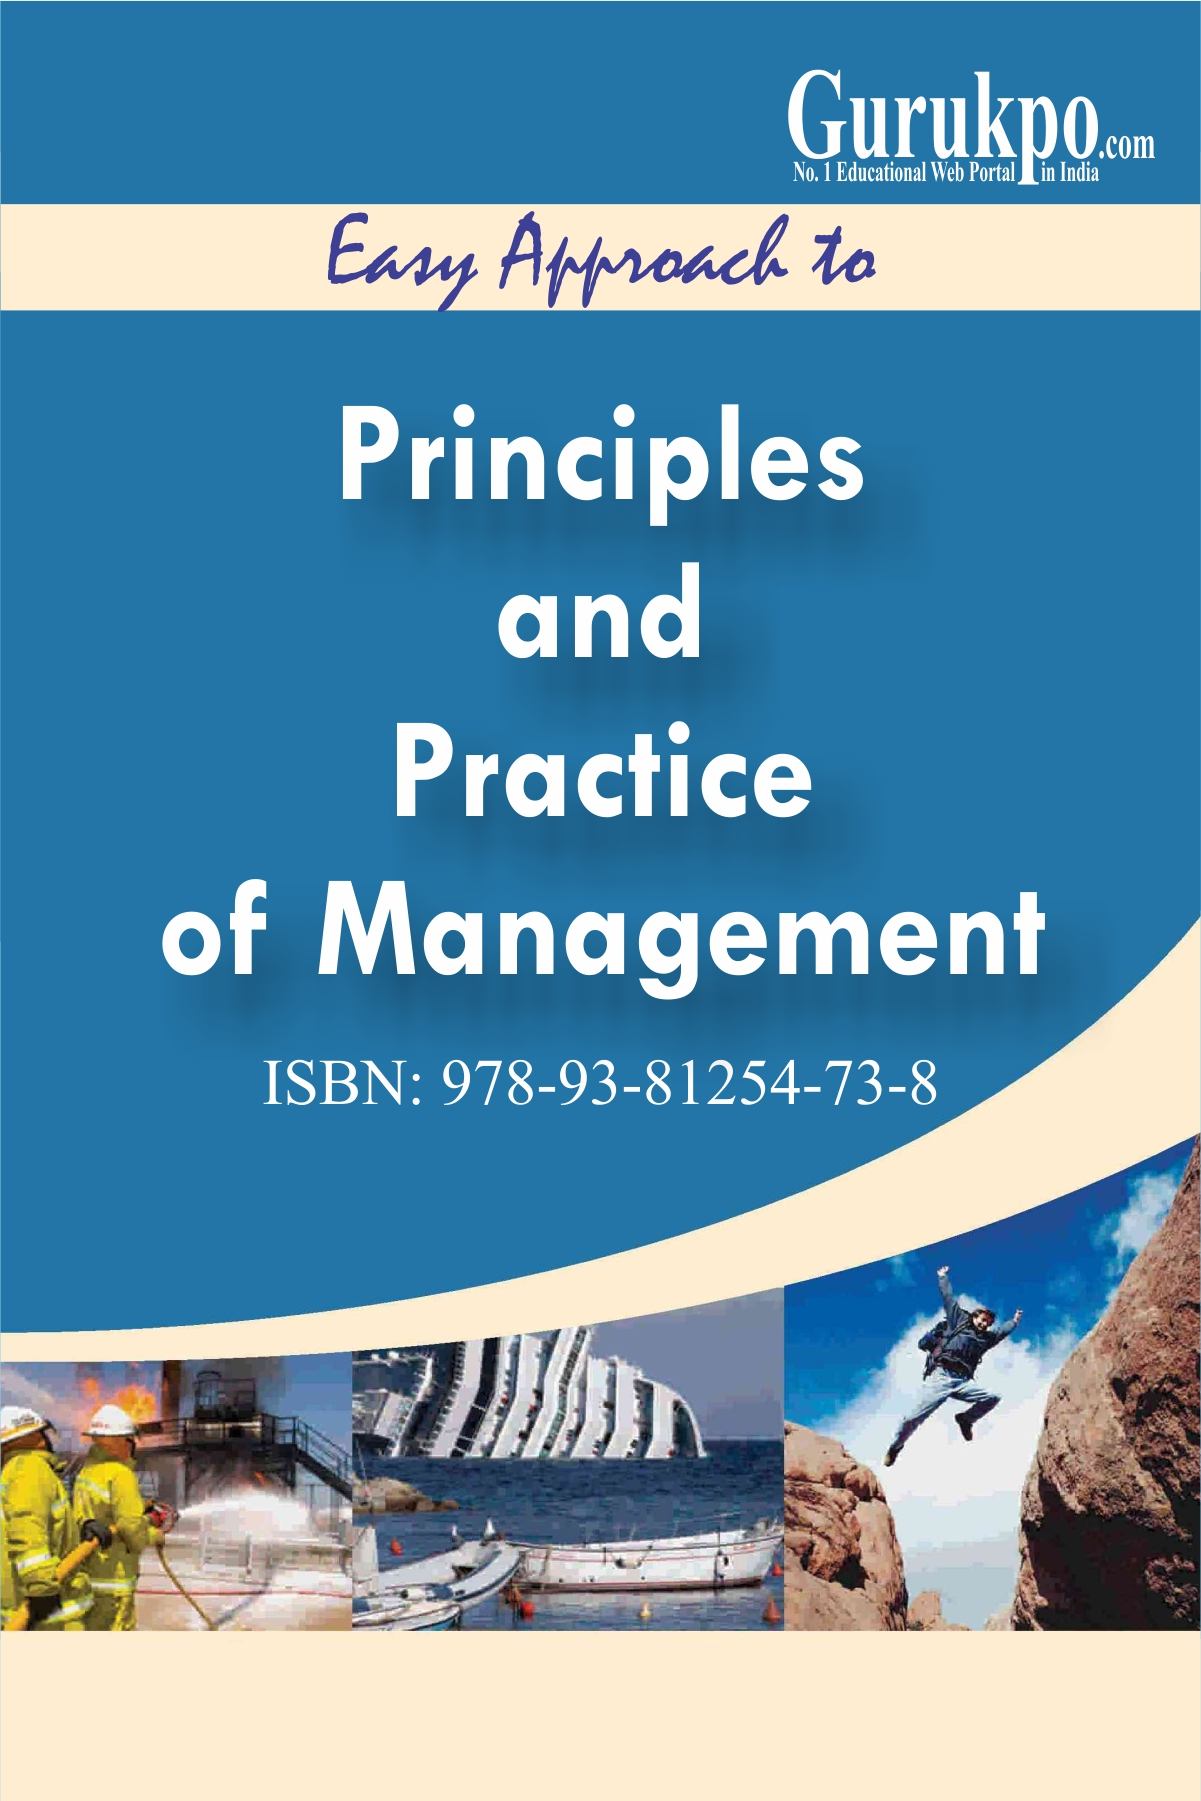 Principles and Practices of Management | Free Study Notes for MBA